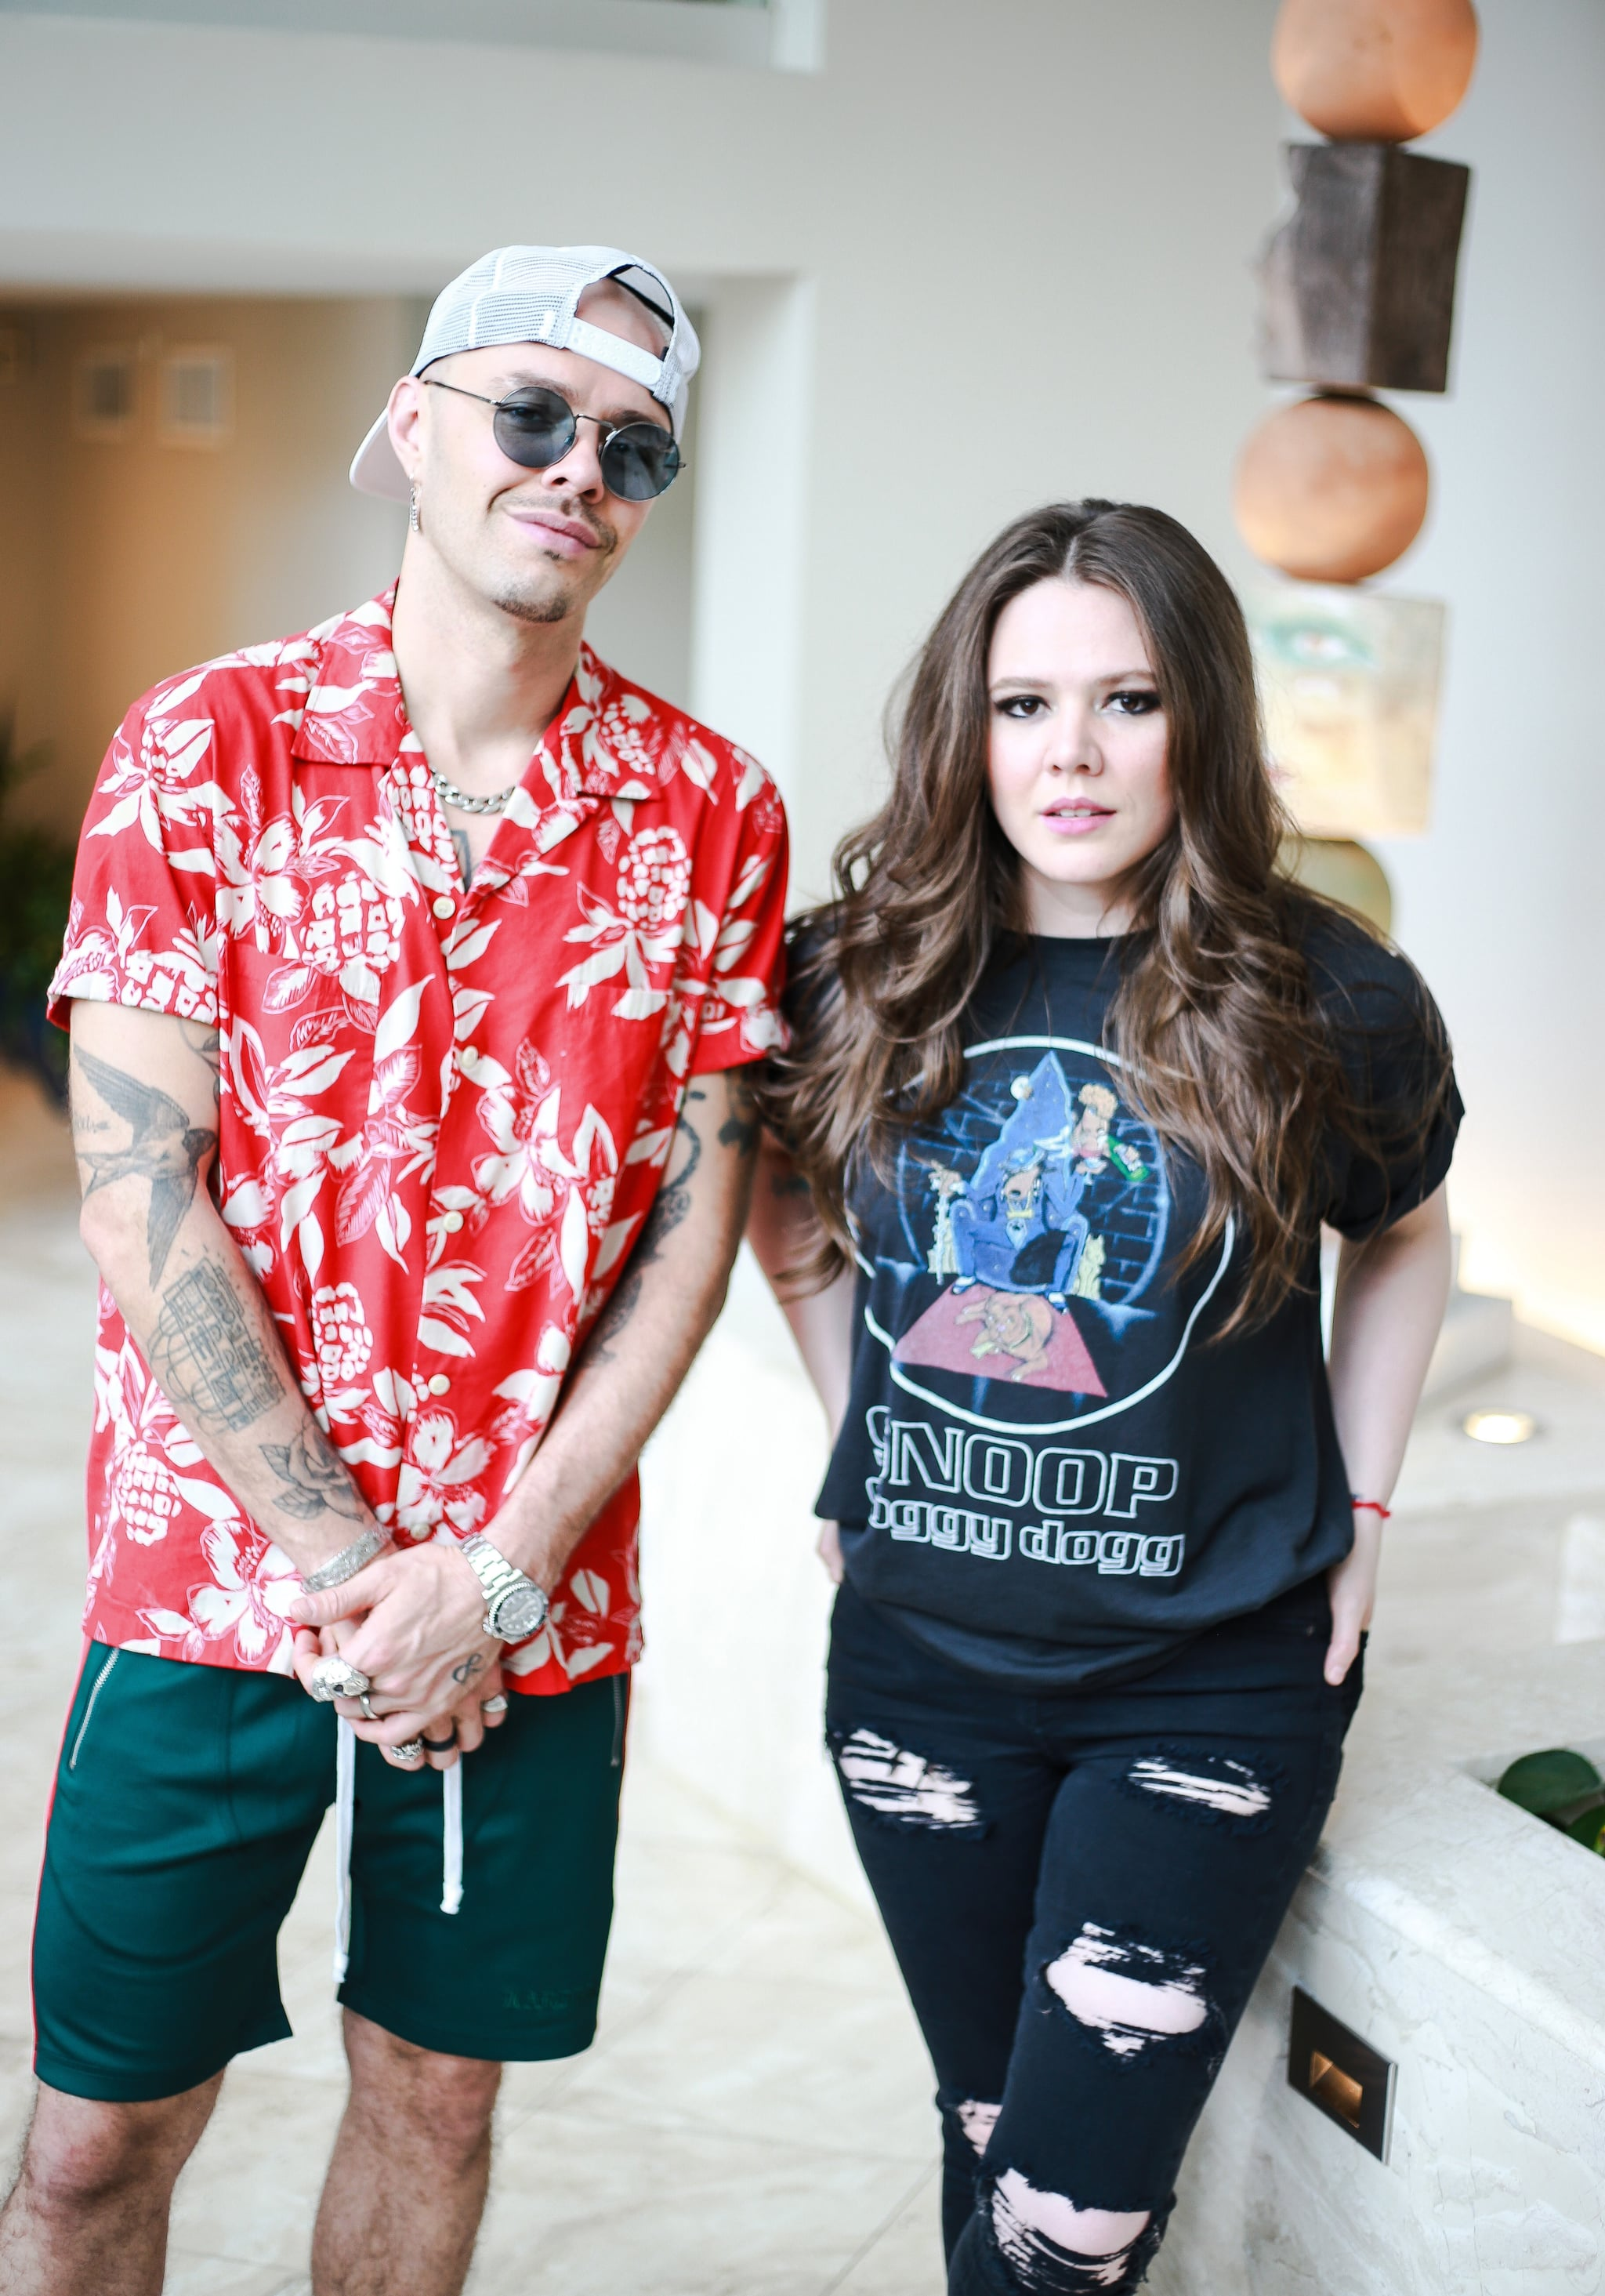 SAN JUAN, PUERTO  RICO- MAY 6: Jesse Huerta and Joy Huerta of Jesse & Joy attend a photo call as part of their media tour at Condado Vanderbilt Hotel on May 6, 2019 in San Juan, Puerto Rico. (Photo by Gladys Vega/Getty Images)